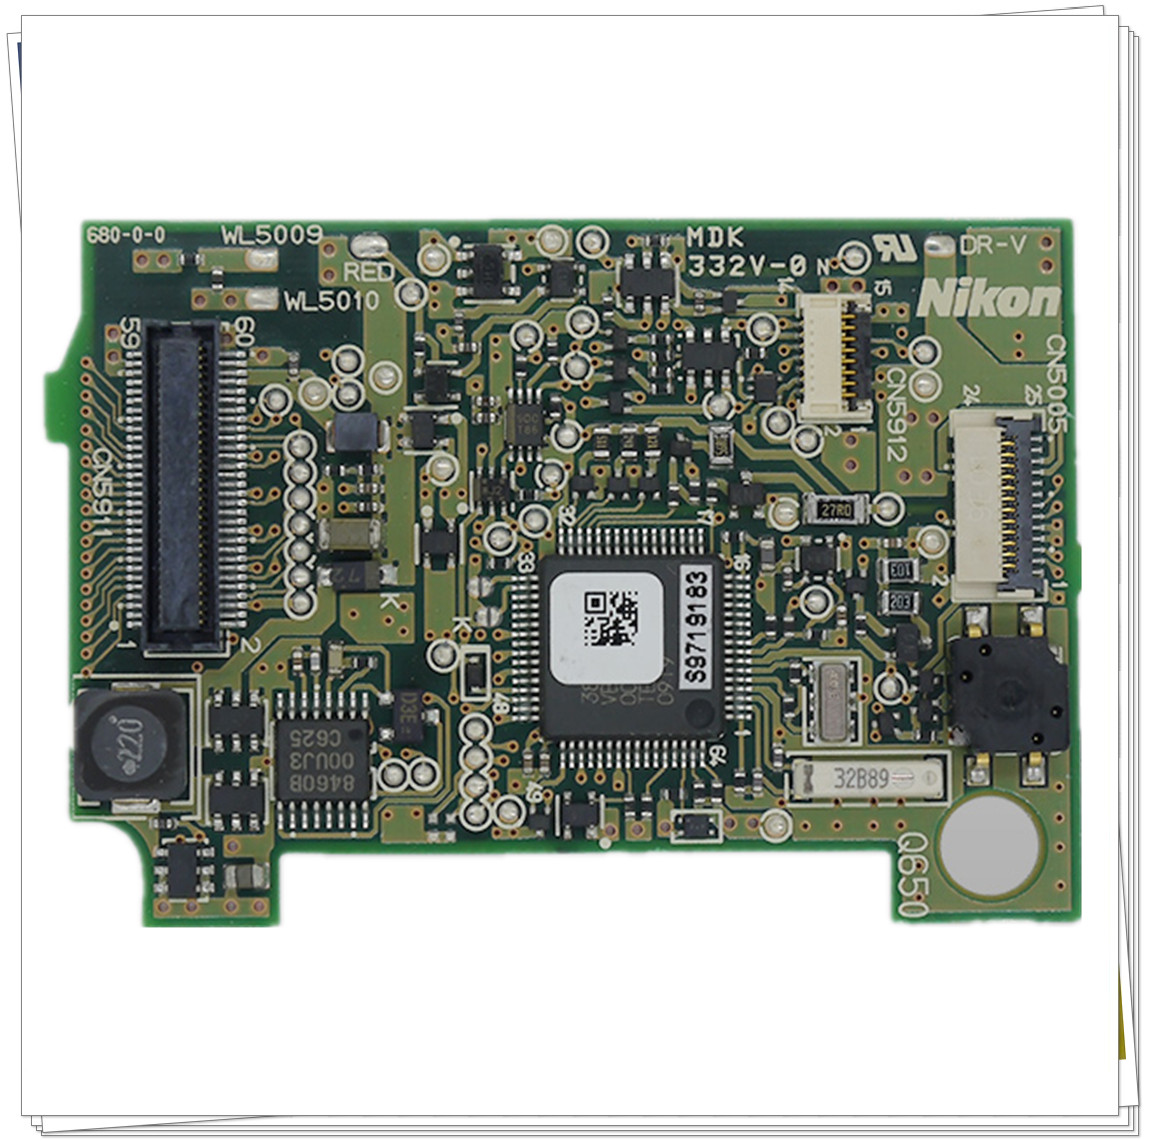 NEW PLATE DRIVE DEPUTY PCB BOARD FOR <font><b>Nikon</b></font> SLR <font><b>D60</b></font> REPAIR <font><b>PARTS</b></font> image